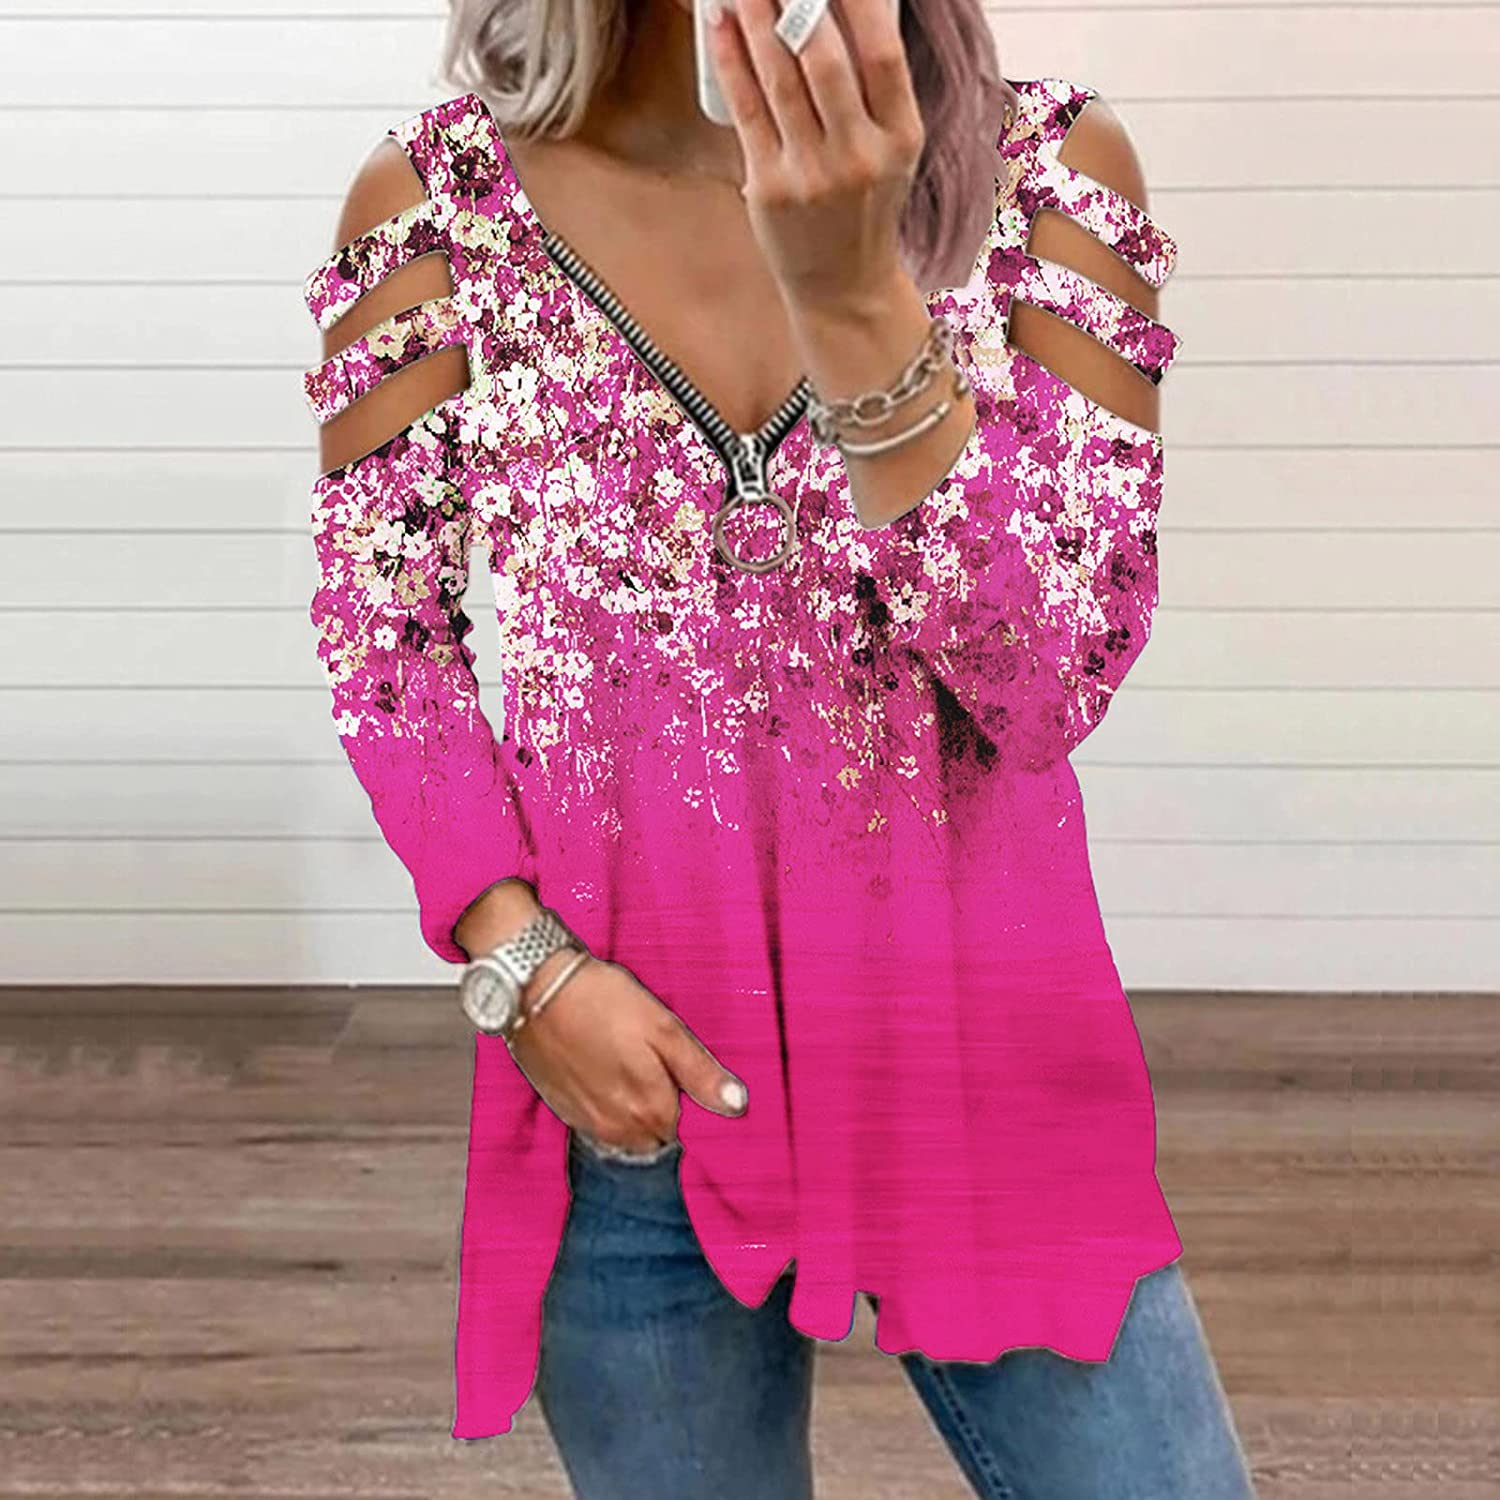 Women's Long Sleeve Cold Shoulder Tops T-Shirt Floral Print Hollow Out Boat Neck Casual Blouses Shirts Tunic